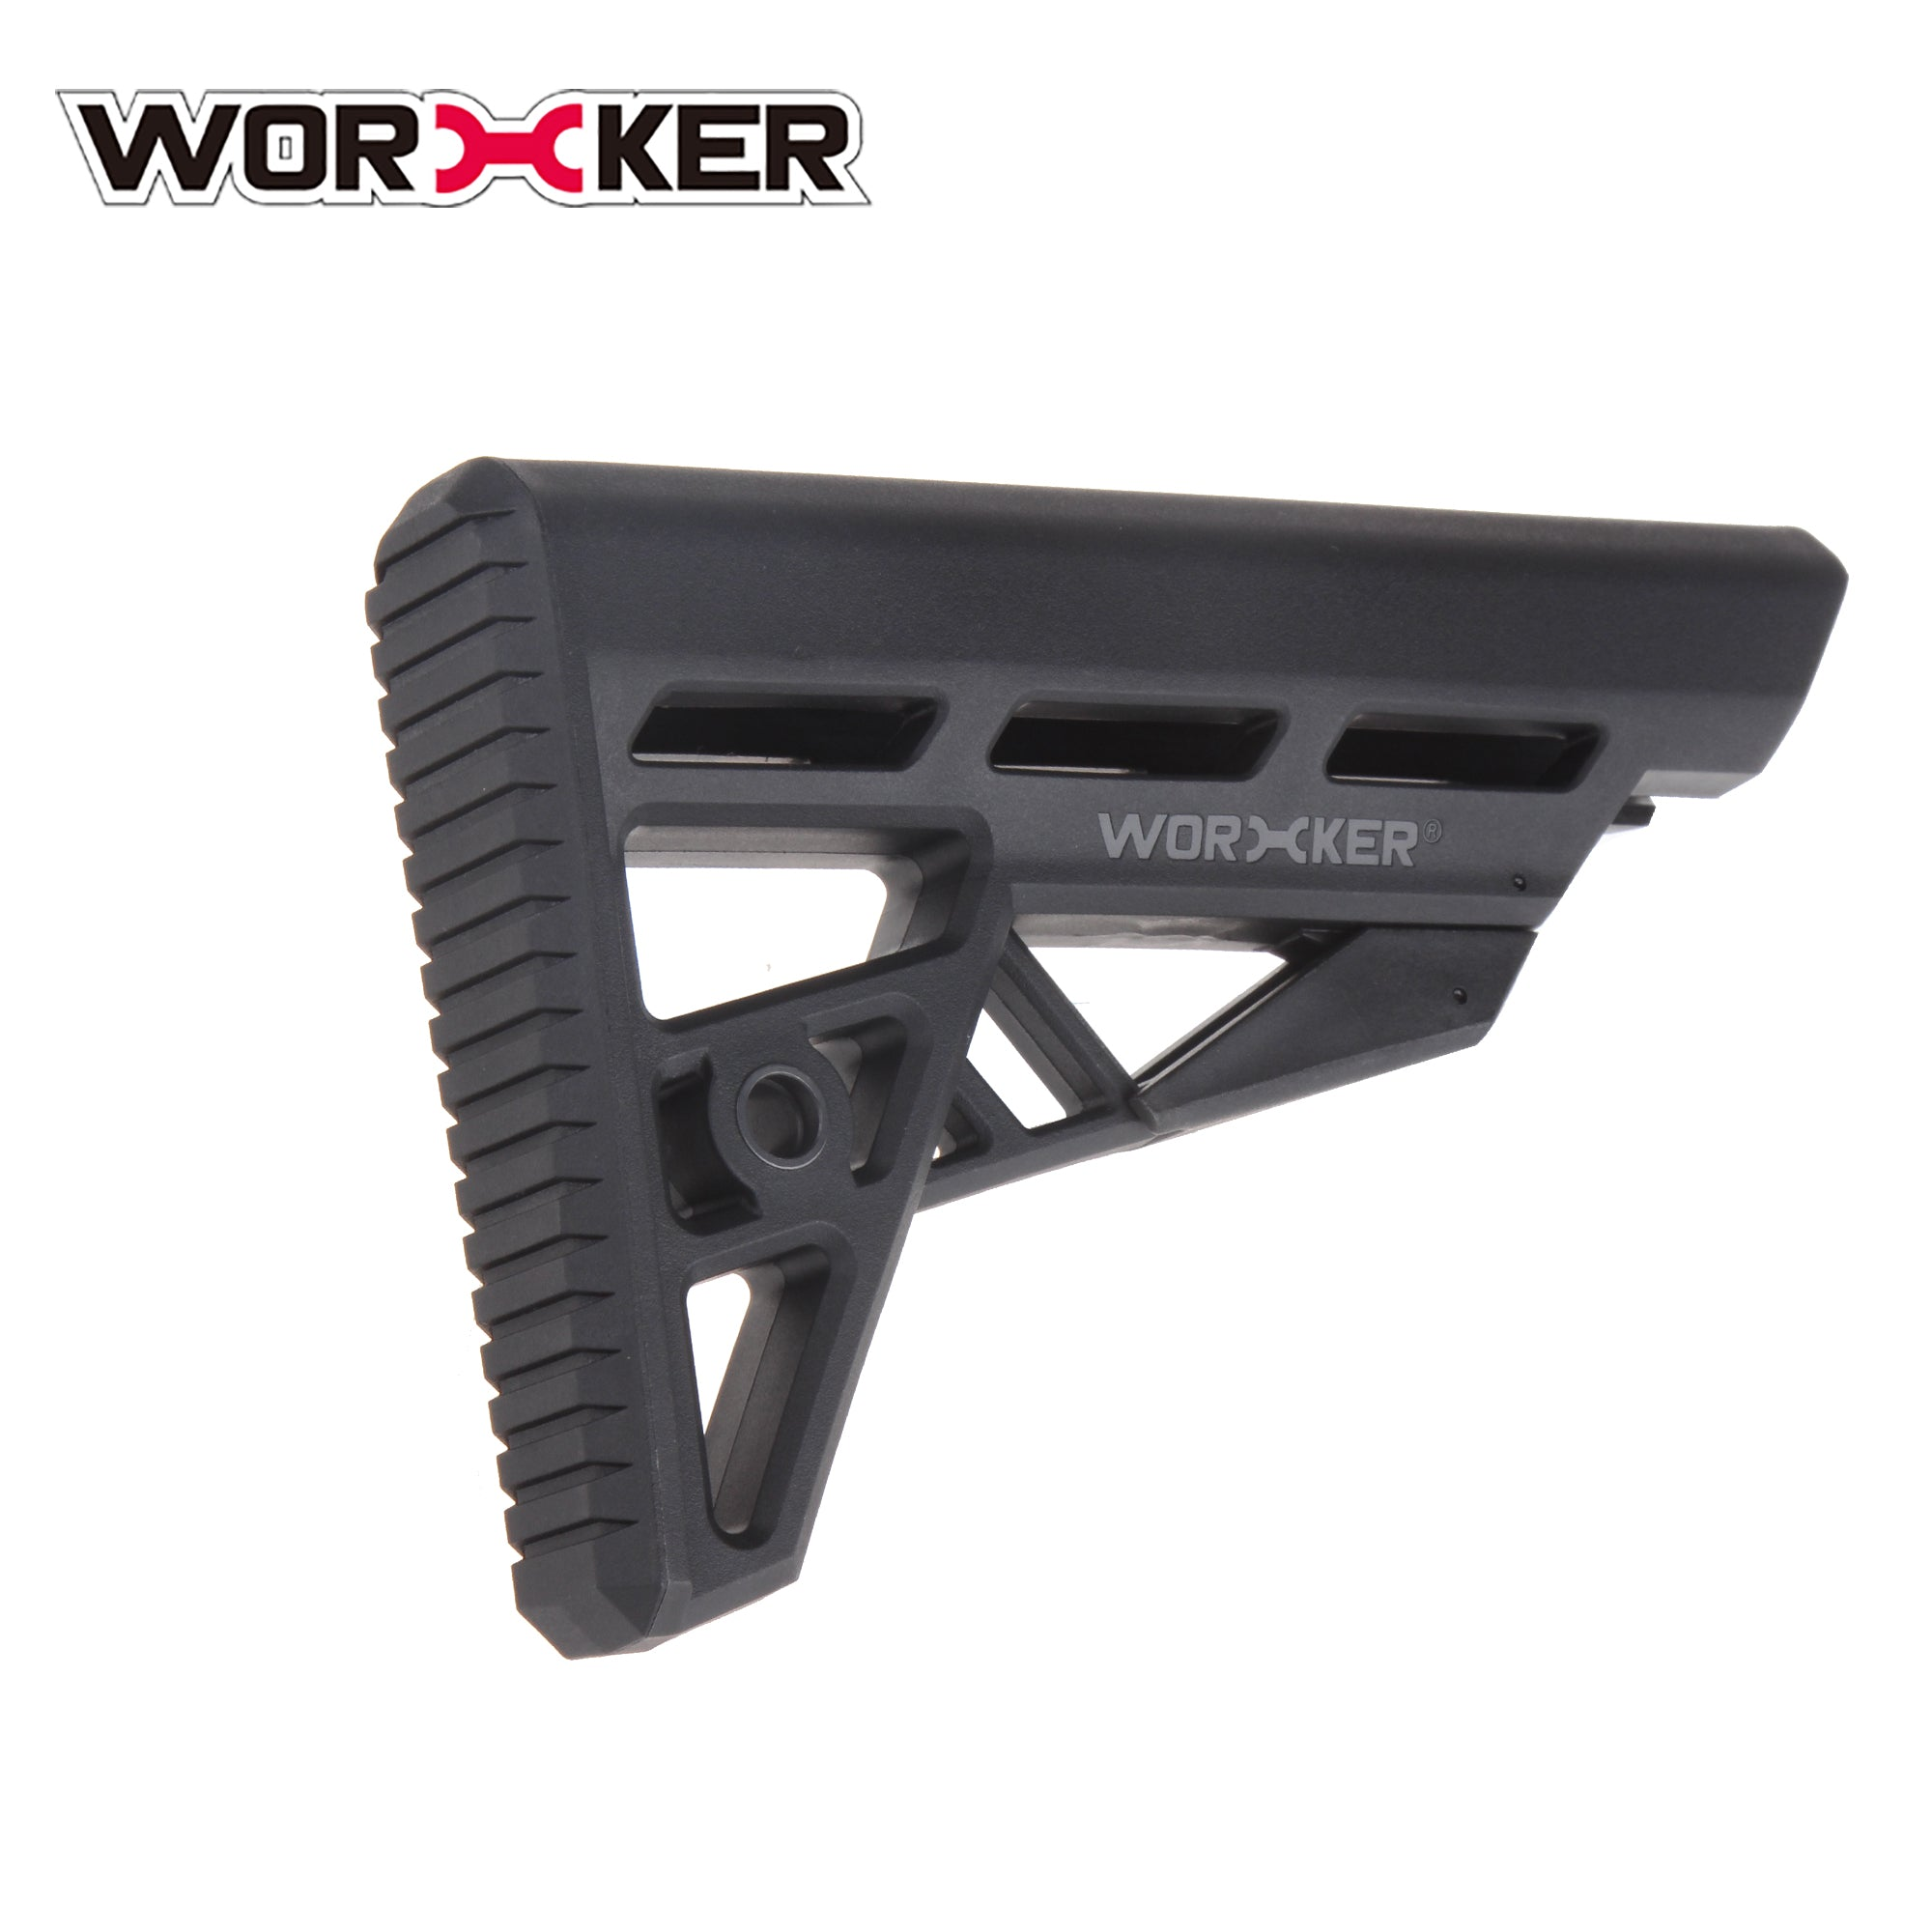 JGCWorker Shoulder Stock Kits with Adapter for Nerf Blaster - Nerf Mod Kits -Worker Mod Kits